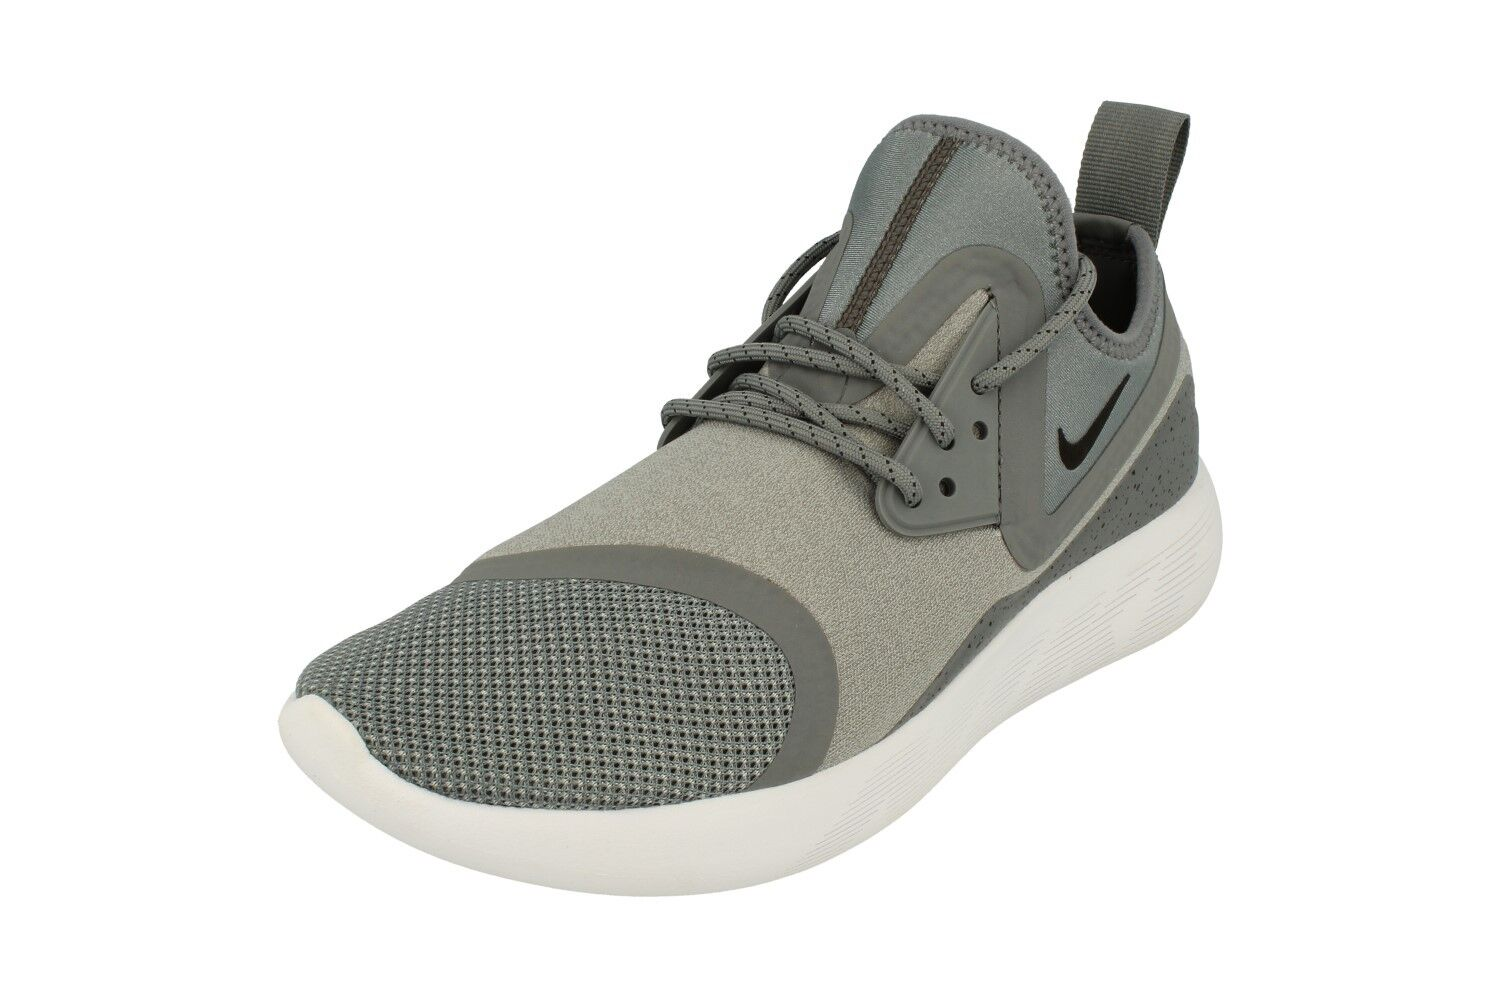 Nike Lunarcharge Essential   Herren Running Trainers 923619 Sneakers Schuhes 002